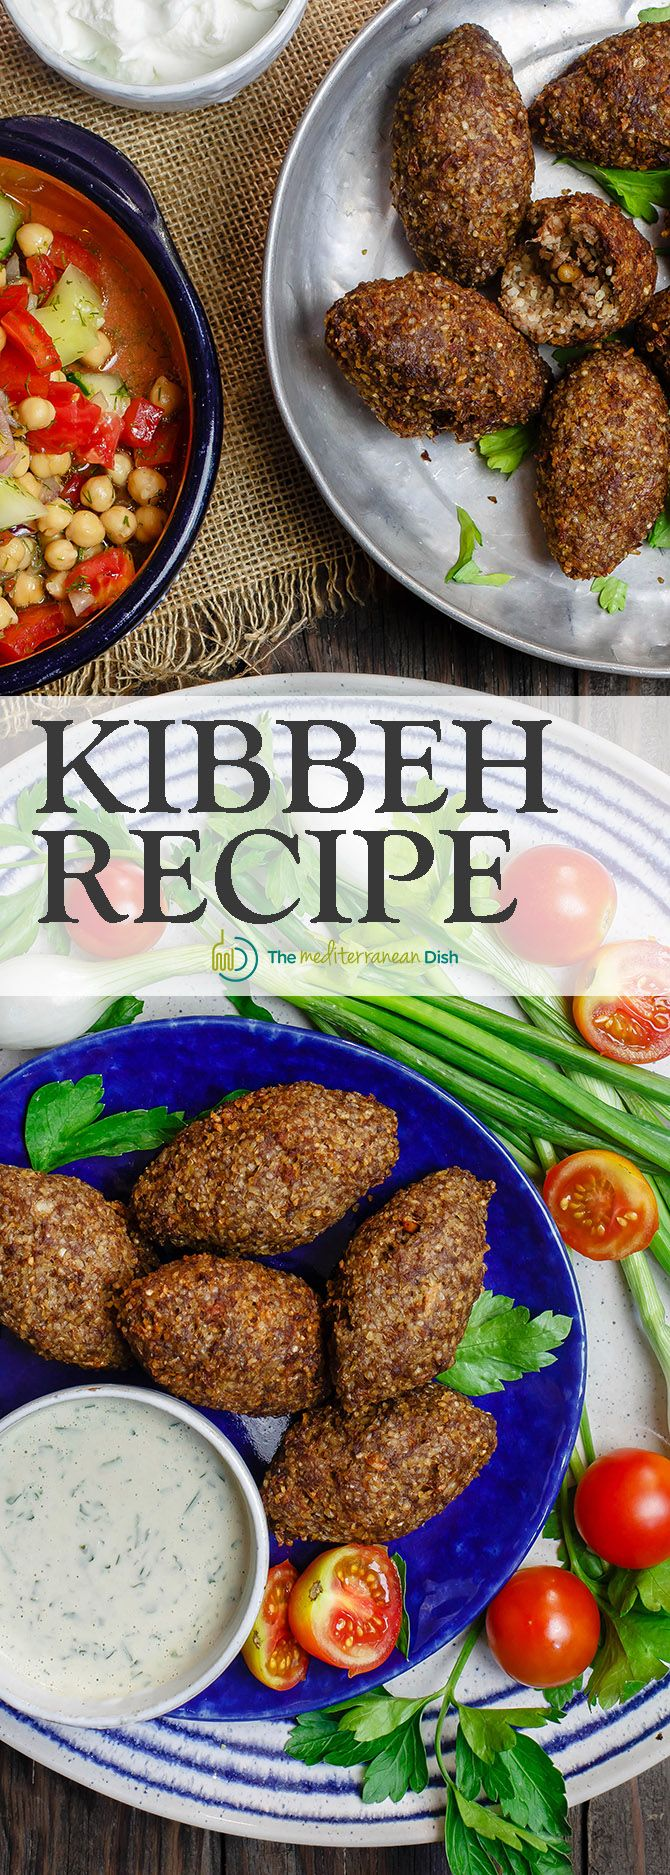 Kibbeh Recipe Tutorial | TheMediterraneanDish.Com. Kibbeh are more than meatballs; they are Middle Eastern croquettes made of bulgur wheat, ground beef or lamb, onions, pine nuts and earthy Middle Eas (Baking Meatballs Beef)